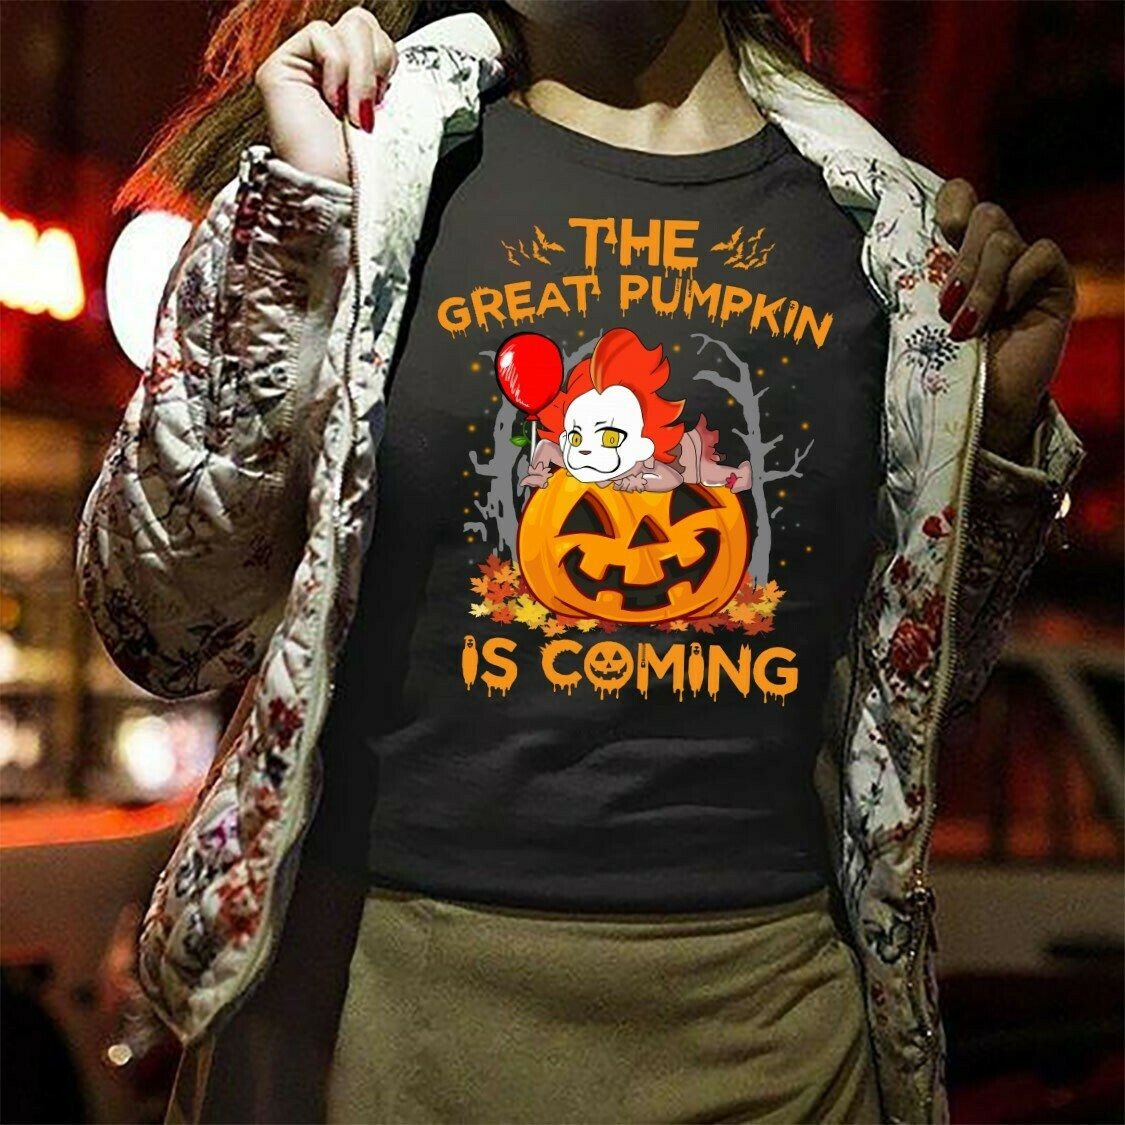 The Great Pumpkin Is Coming Chibi Pennywise Horror Friday The 13th Villains Halloween Movie Mashup Halloween Tee Not So Scary T-Shirt Long Sleeve Sweatshirt Hoodie Jolly Family Gifts